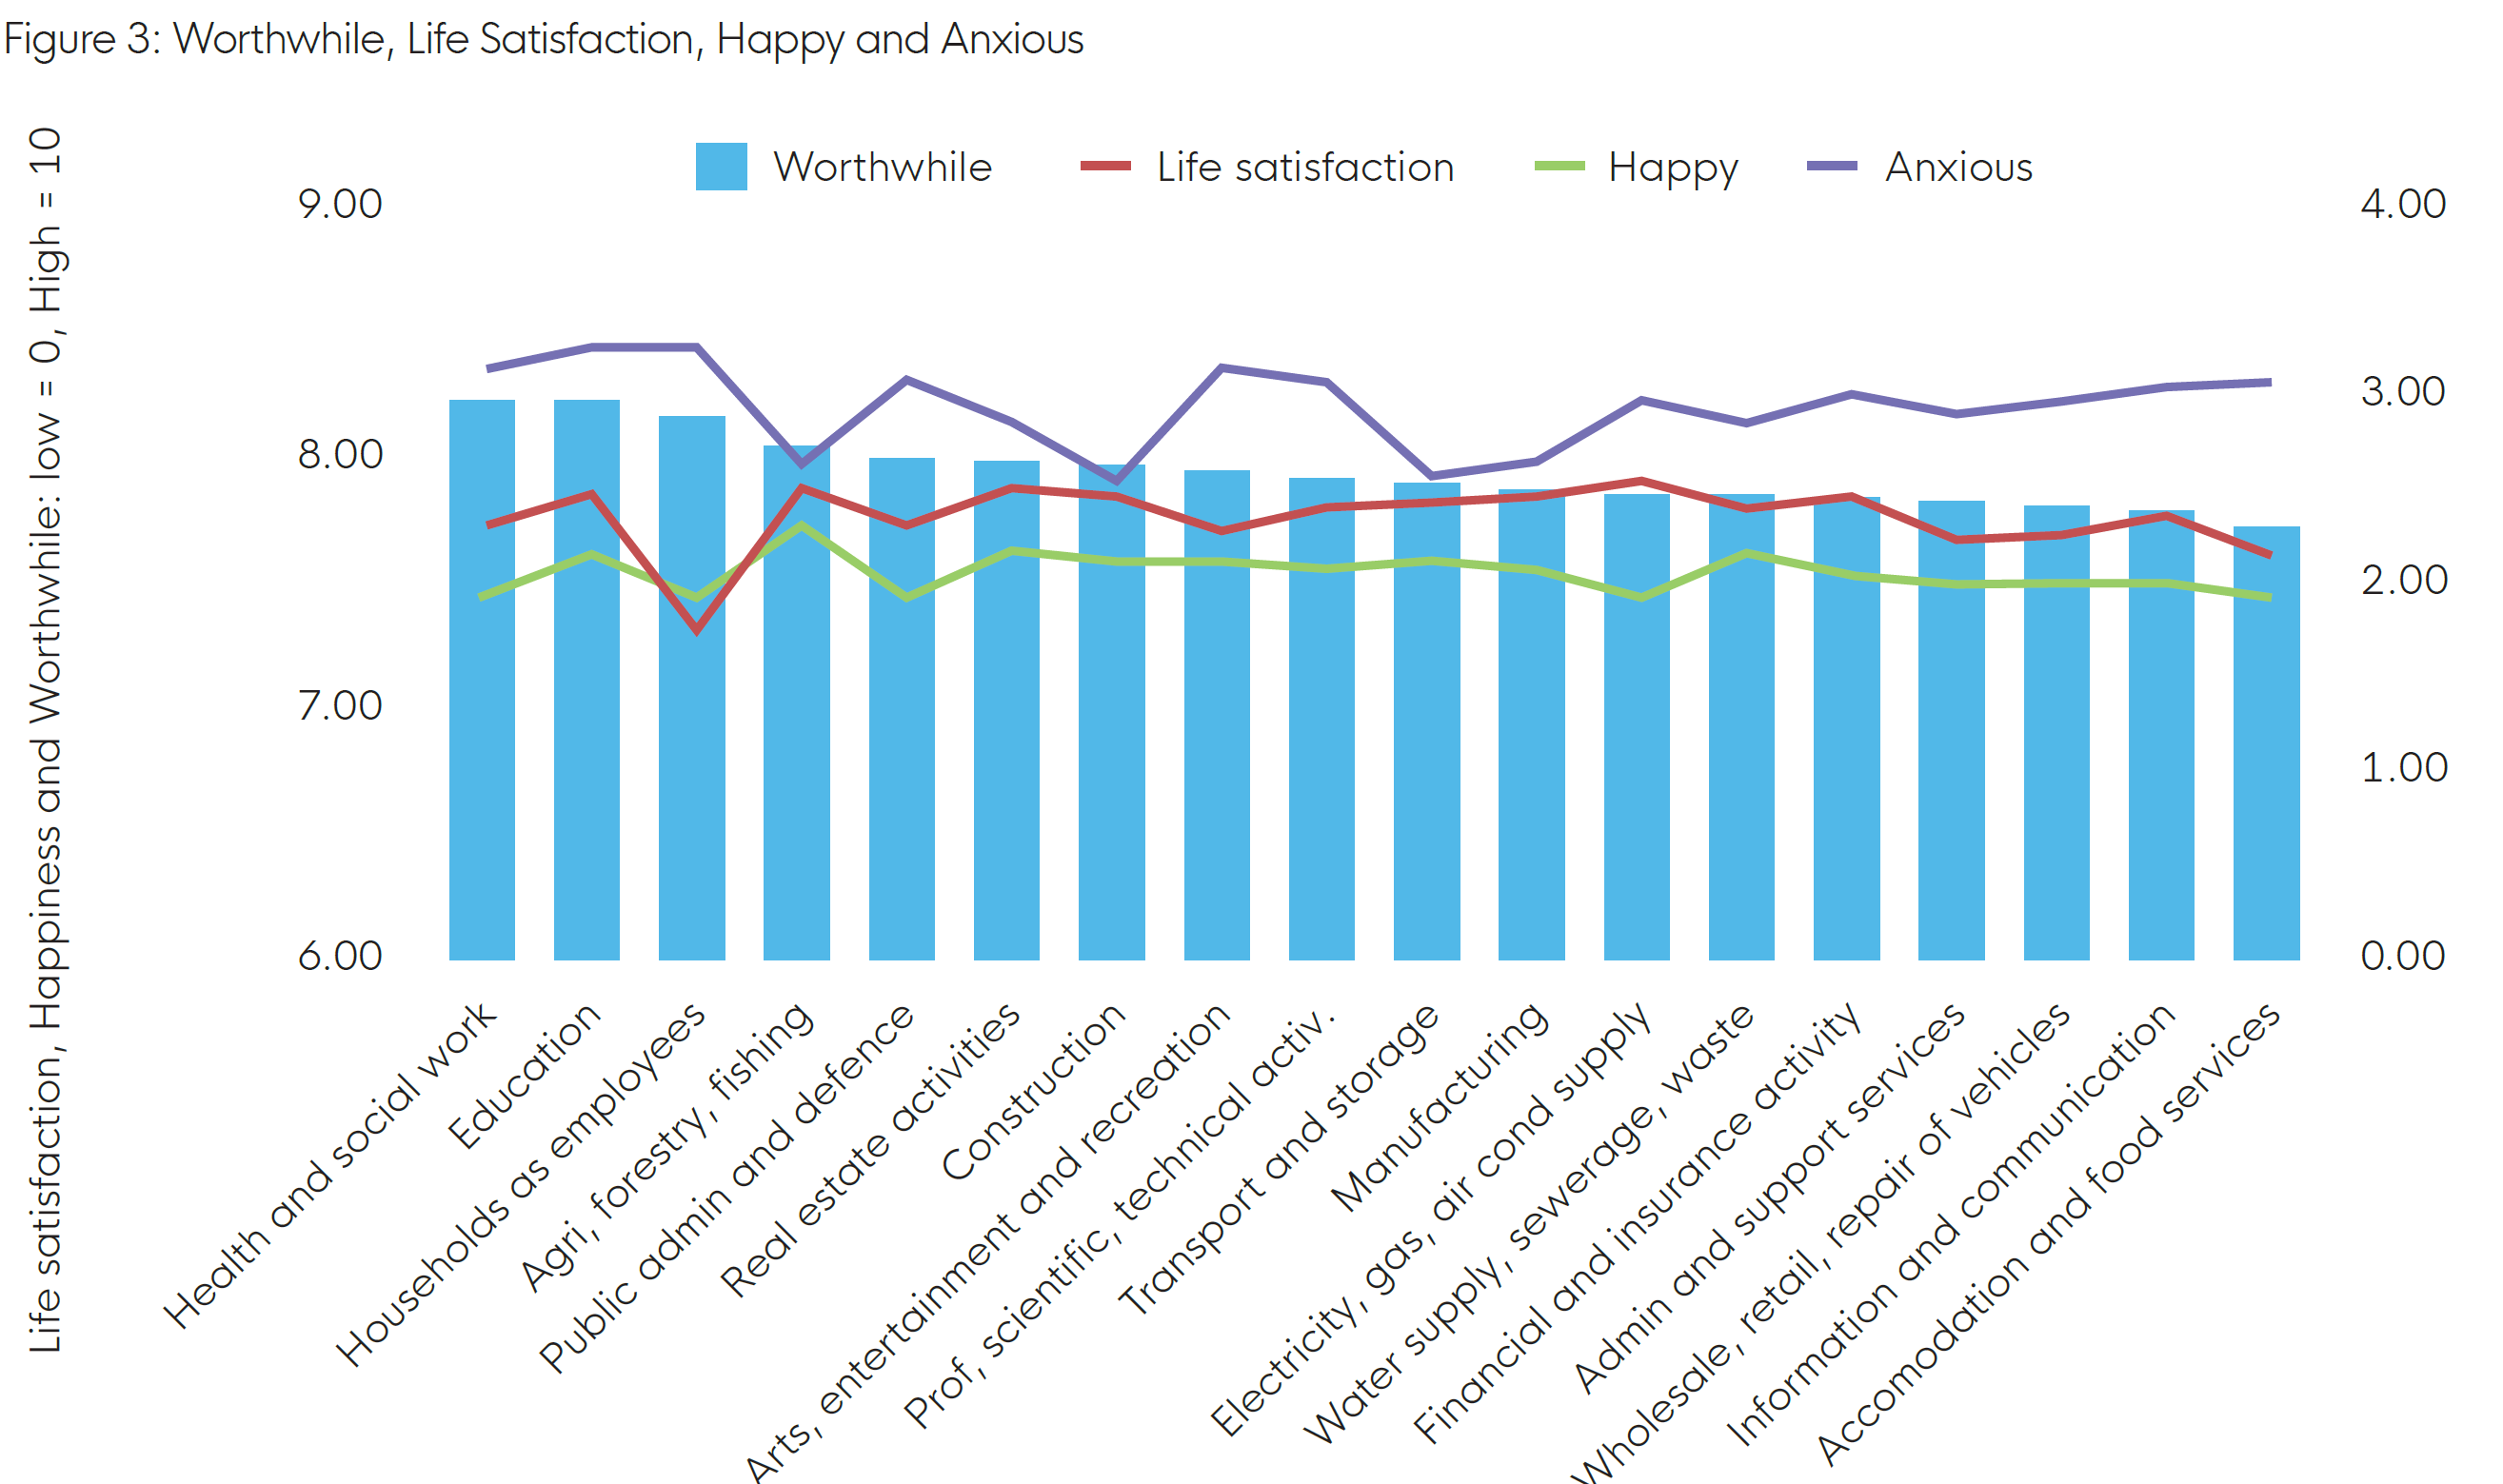 Graph showing life satisfaction, happiness, anxiety, and sense of purpose for different sectors